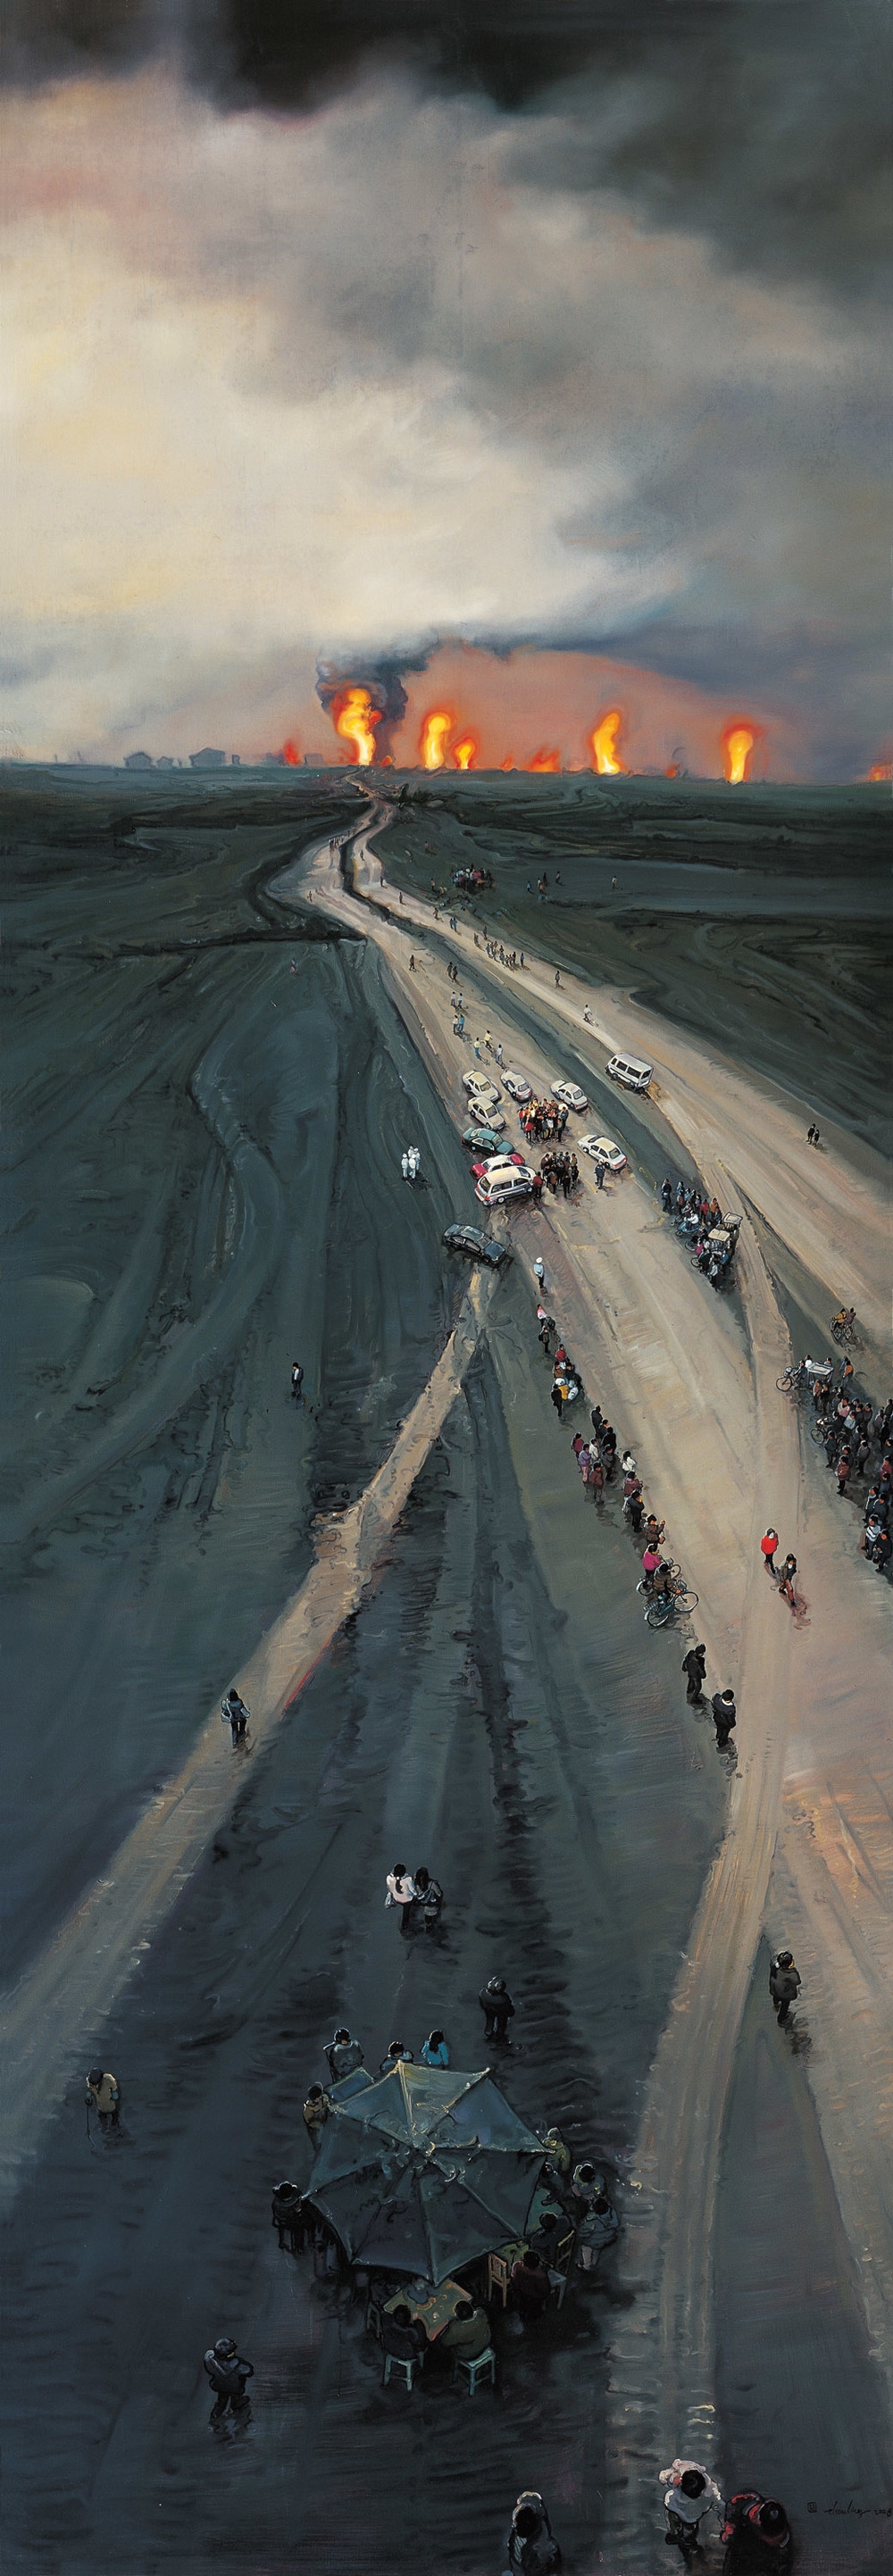 Zhou Jinhua 周金华, Half in the Morning and Half at Dusk 一半是清晨, 一半是黄昏, 2009, Oil on canvas 布面油画, 400 x 140 cm